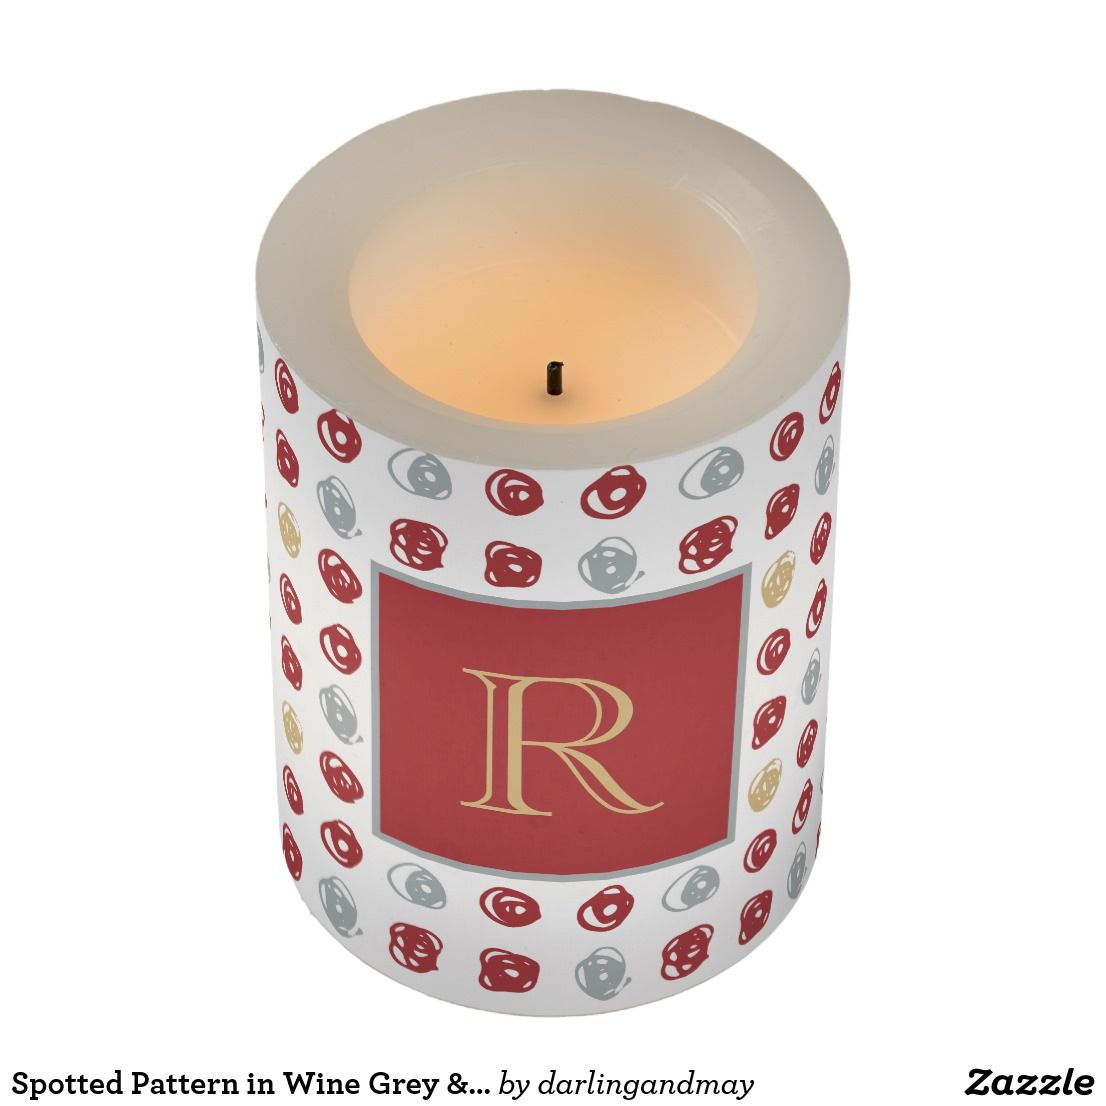 Monogram Flameless Led Candle With Abstract Spotted Pattern In Red Wine Blue Gray Honey Candles Ledcandles F Flameless Led Candles Spots Pattern Candles